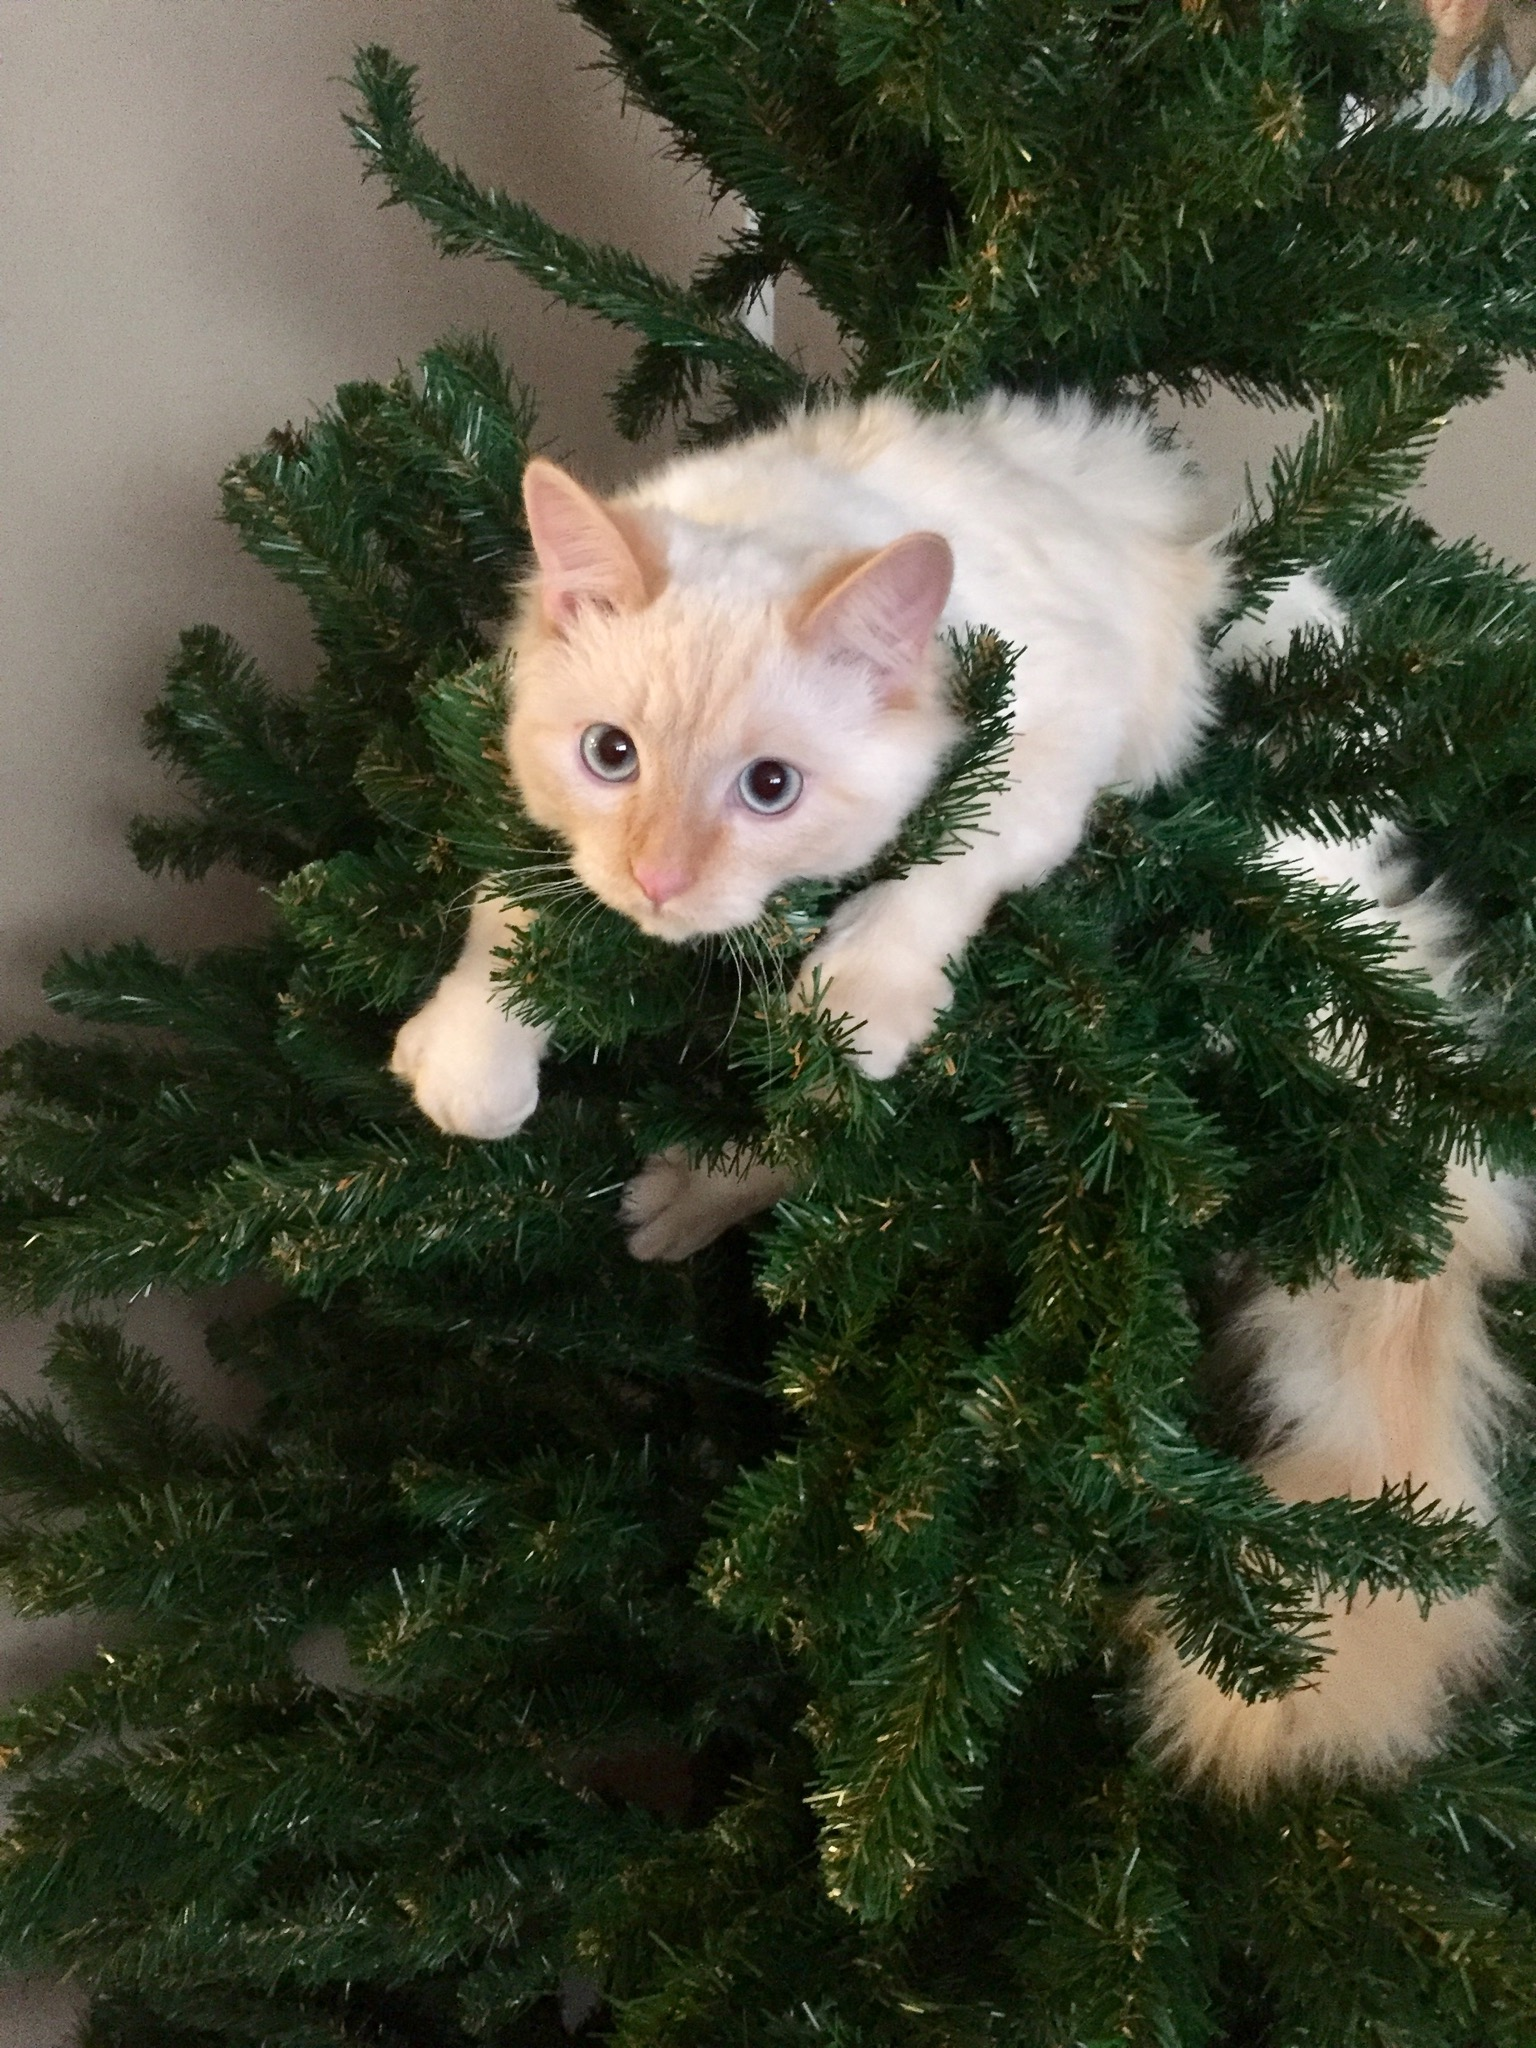 Flame colorpoint cat on Christmas Tree